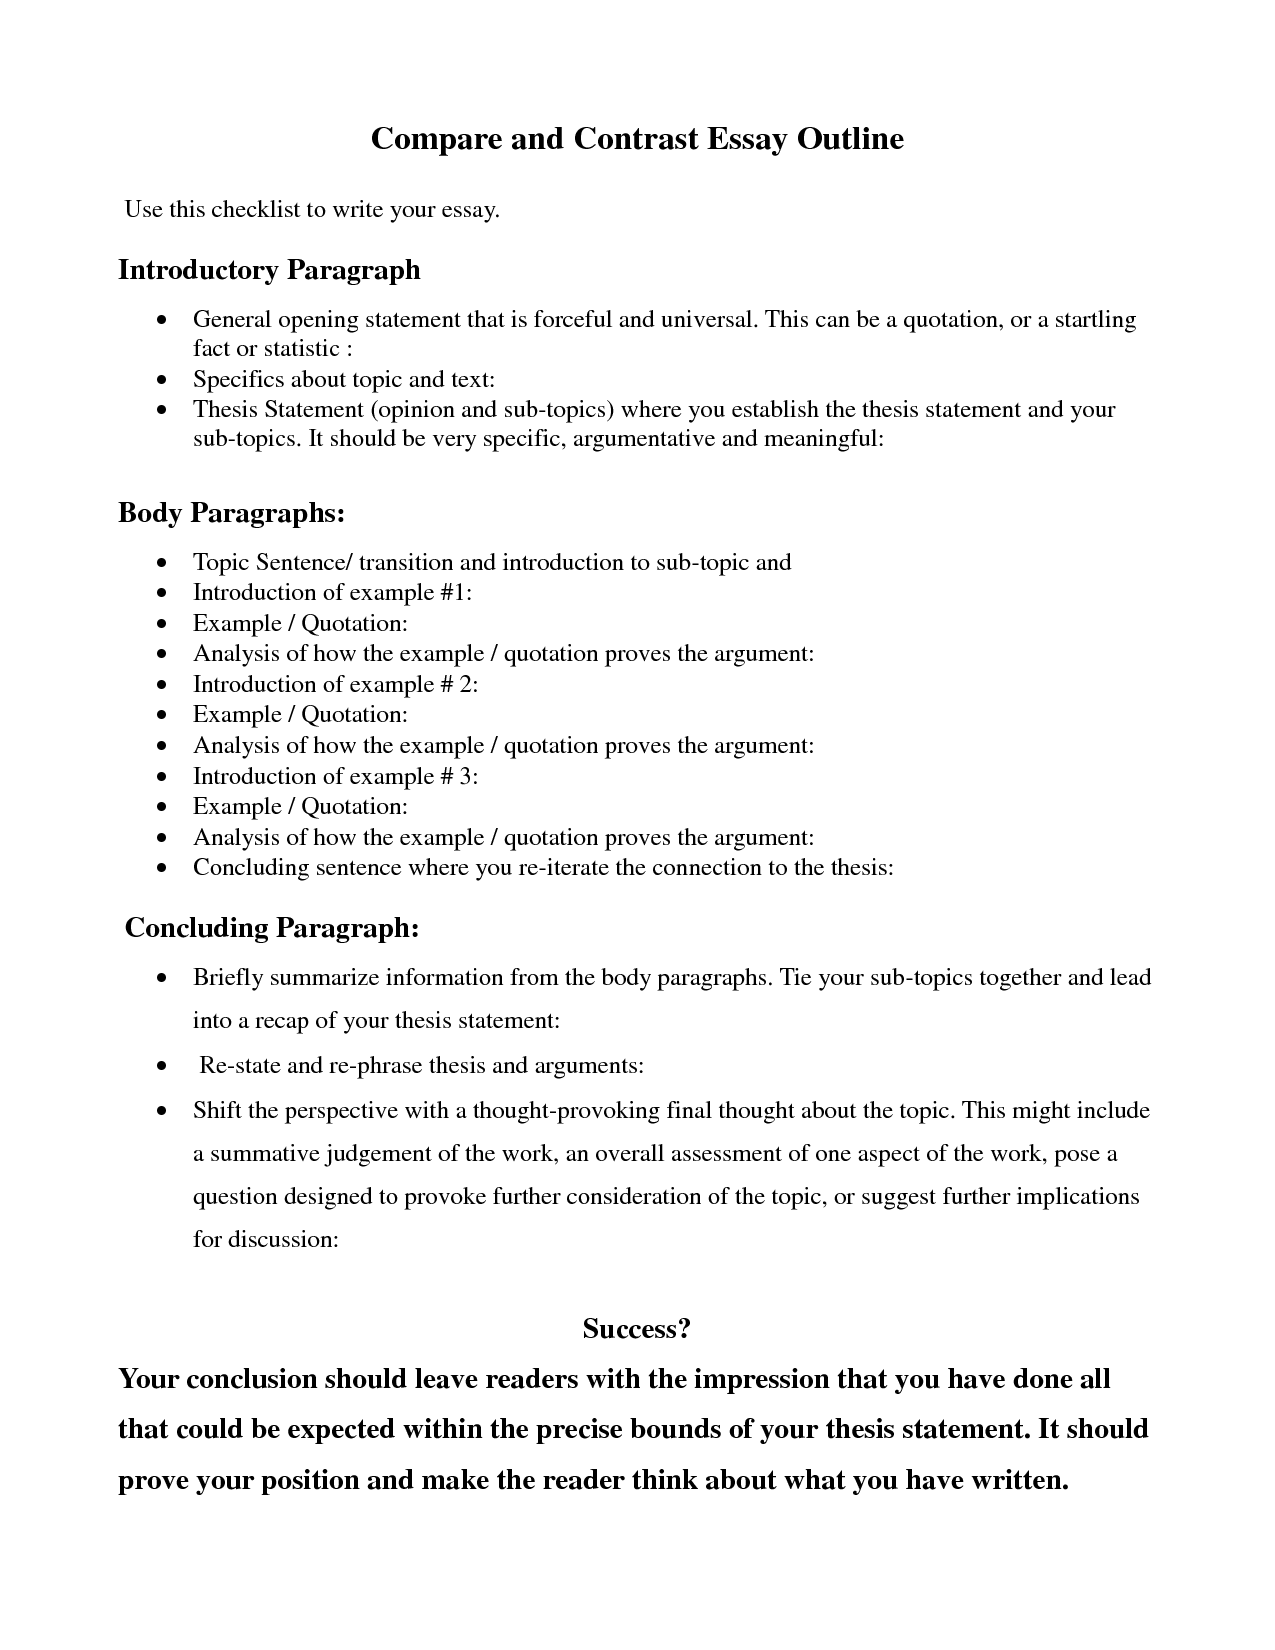 comparecontrast essay outline  google search  education  comparecontrast essay outline  google search exle of a thesis statement  for an argumentative expository essay examples